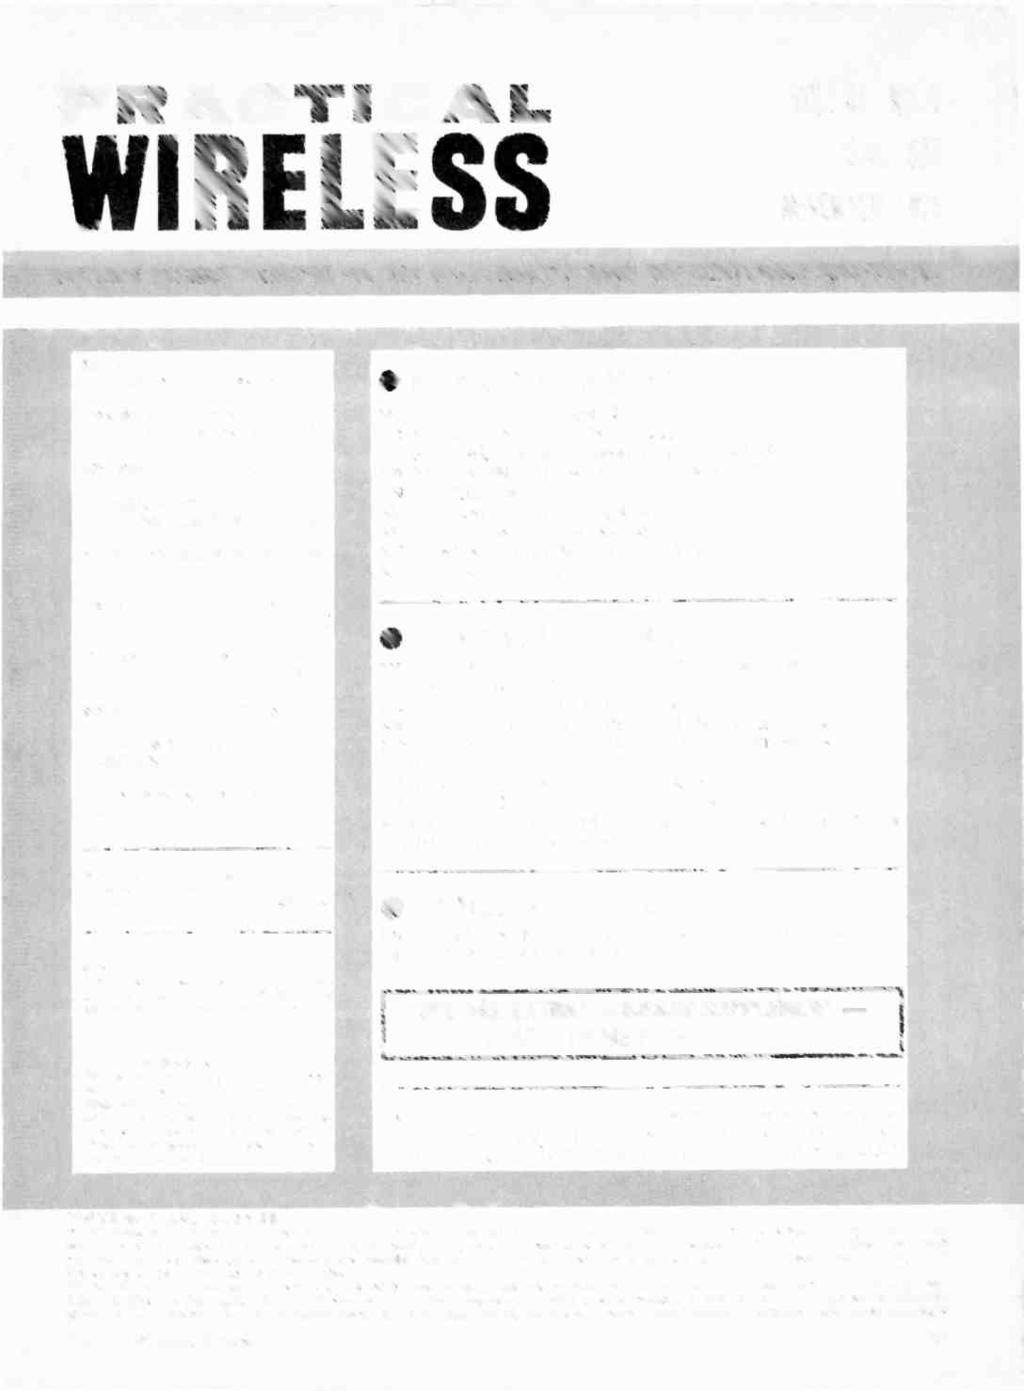 PRACTICAL VOL 51 NO.7 WIRELESS ISSUE 825 NOVEMBER 1975 BRITAIN'S PREMIER MAGAZINE FOR THE DO-IT-YOURSELF RADIO AND ELECTRONICS CONSTRUCTOR EDITOR Lionel E.